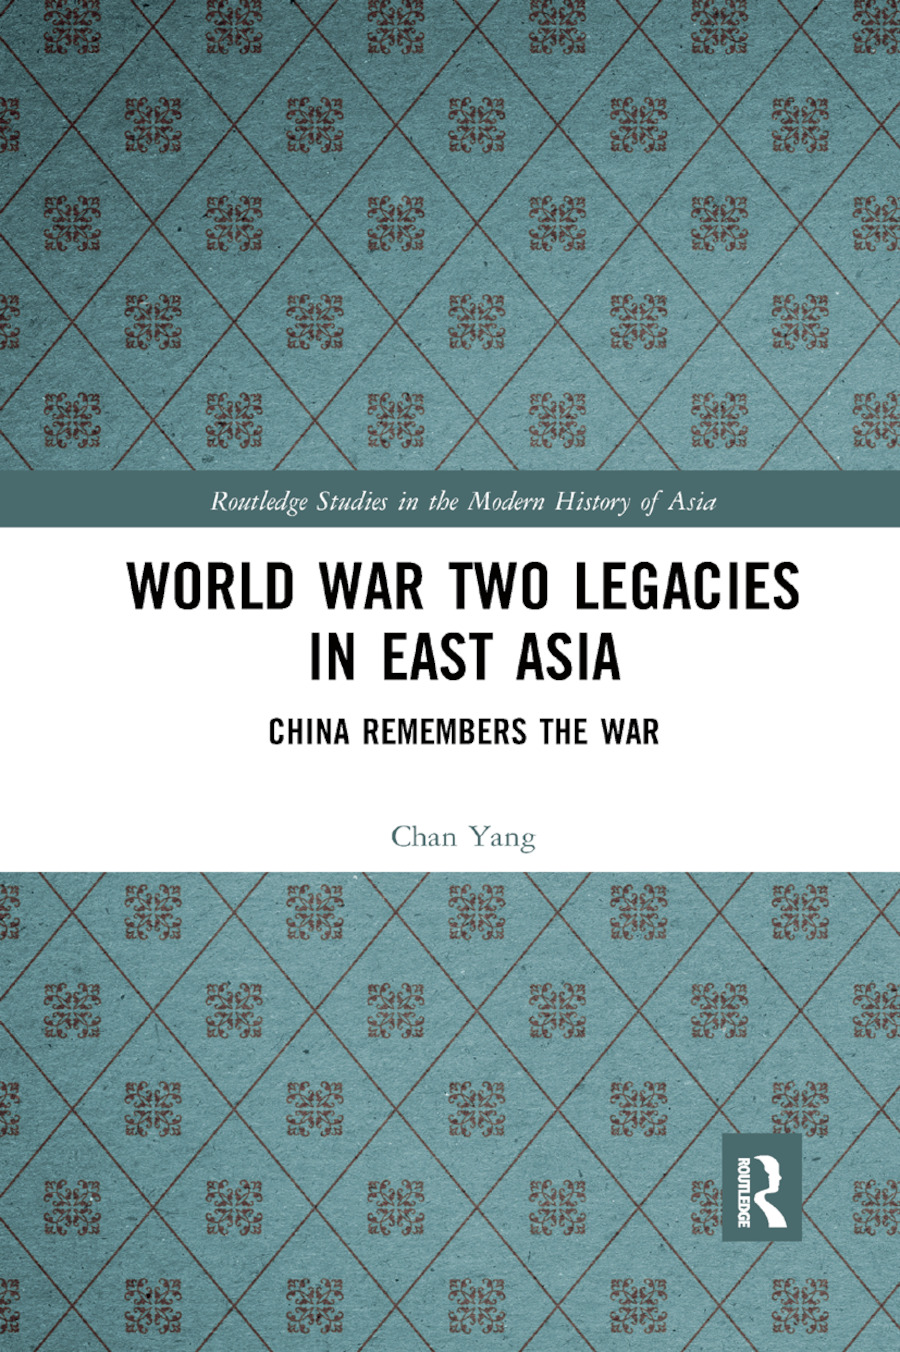 World War Two Legacies in East Asia: China Remembers the War book cover